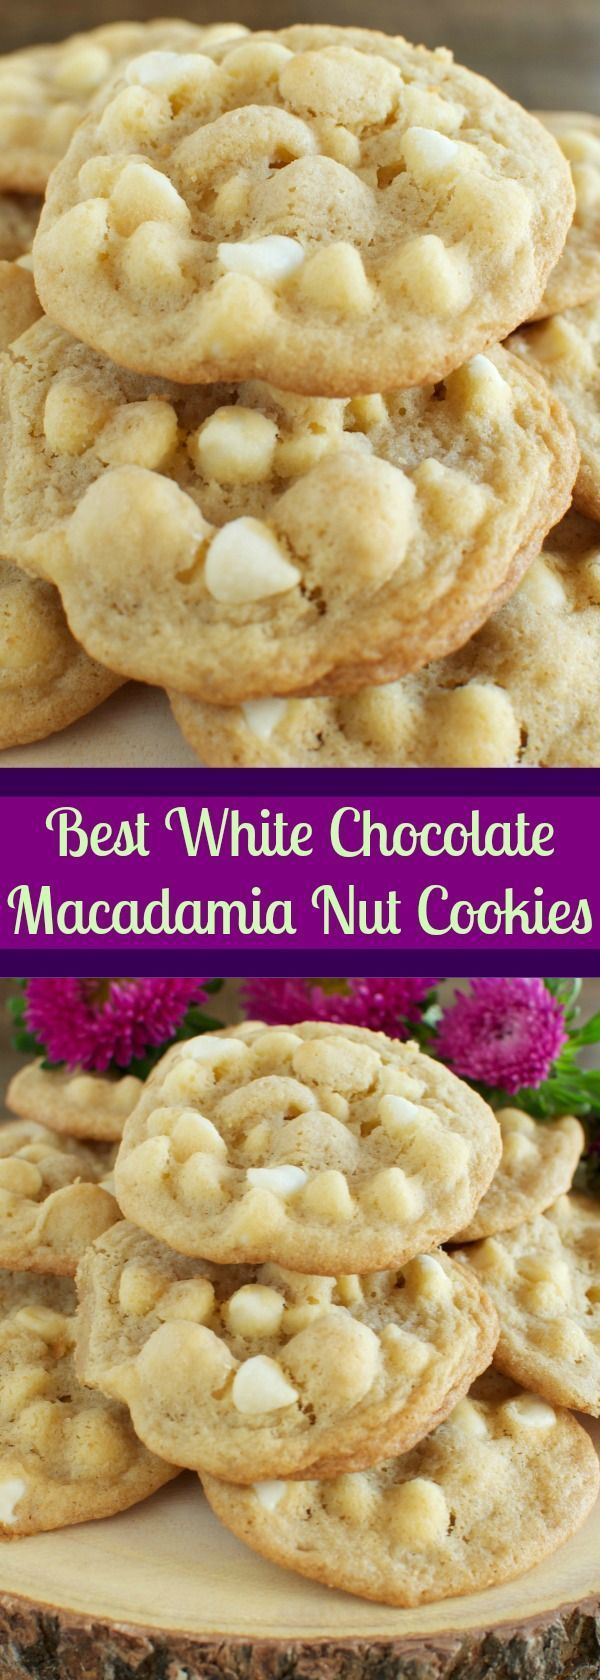 The BEST White Chocolate Macadamia Nut Cookies Ever!!! Chewy and buttery and totally addicting!